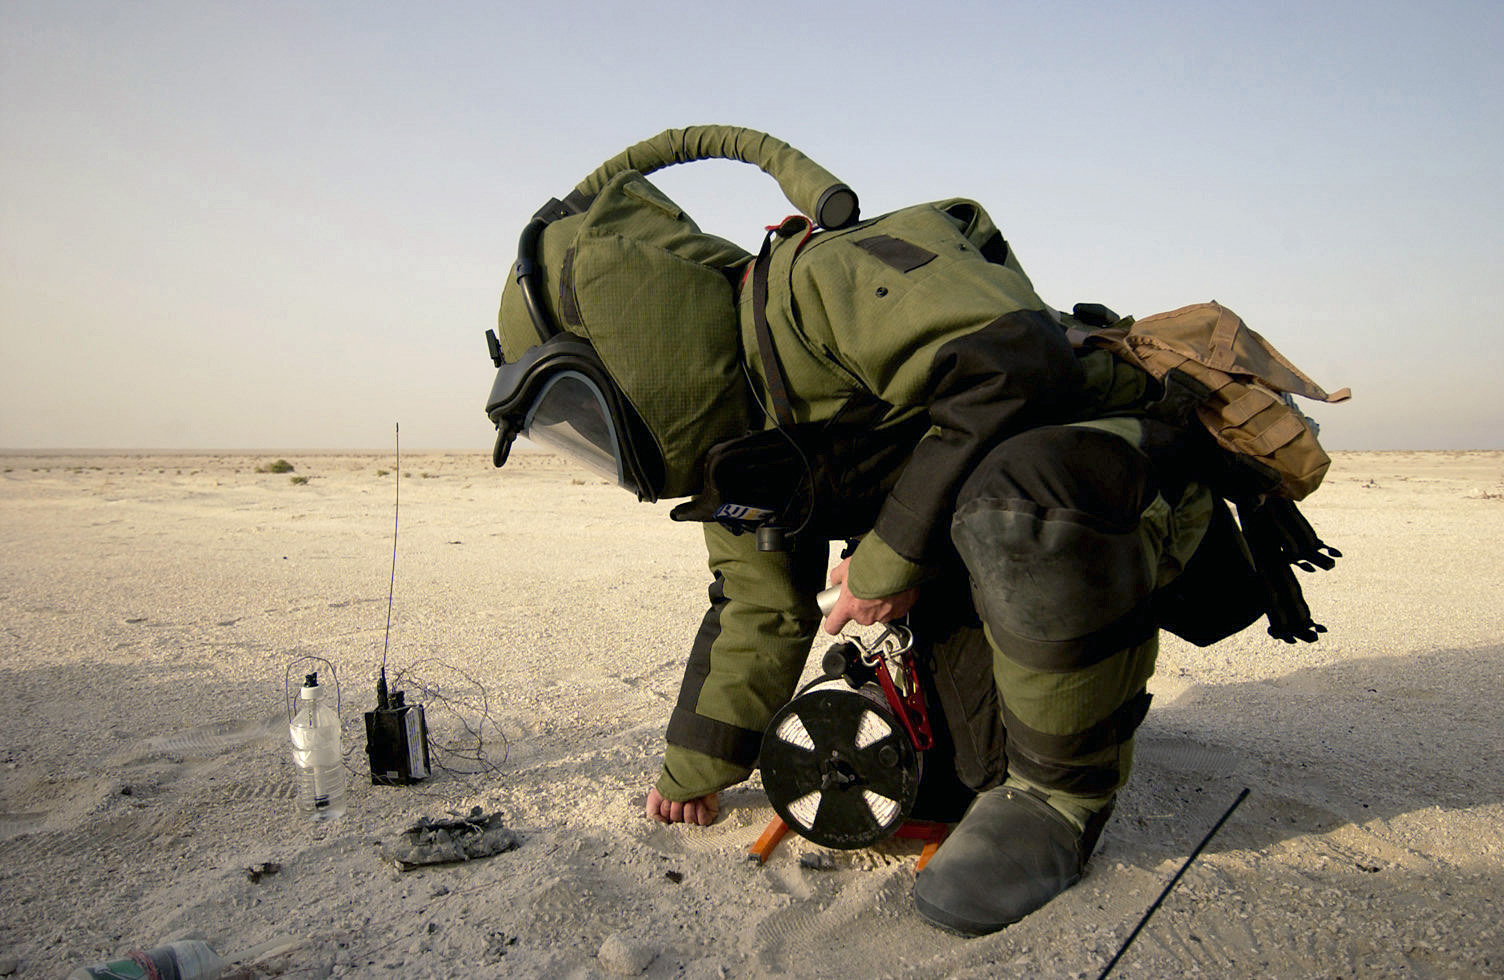 EOD technician investigating a wire in the desert